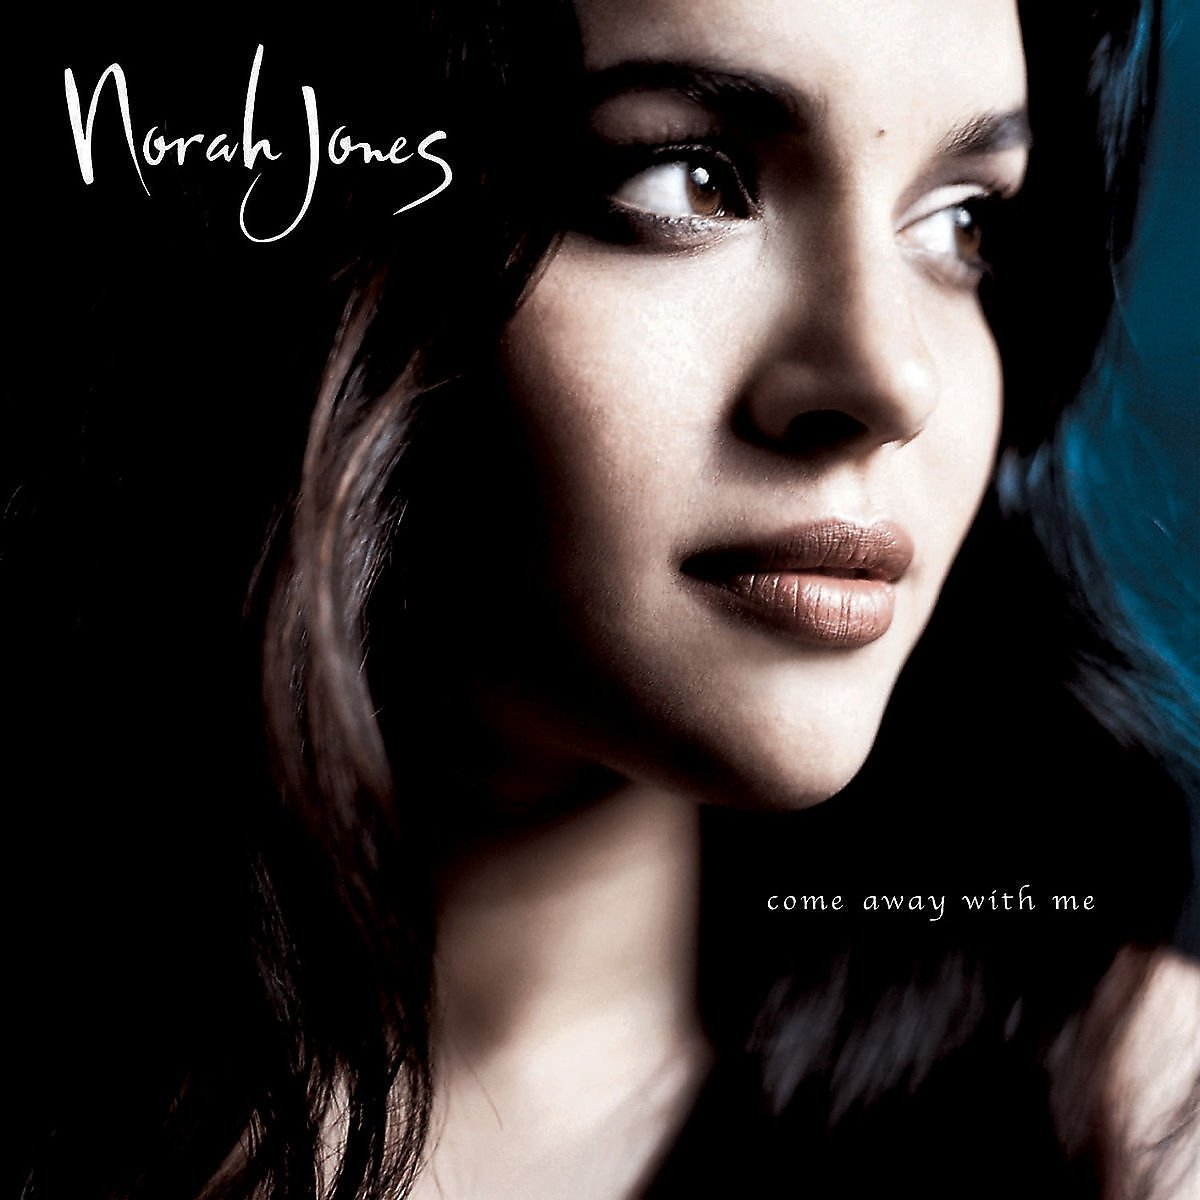 Norah Jones – 'Come Away With Me' (26 de febrero de 2002)